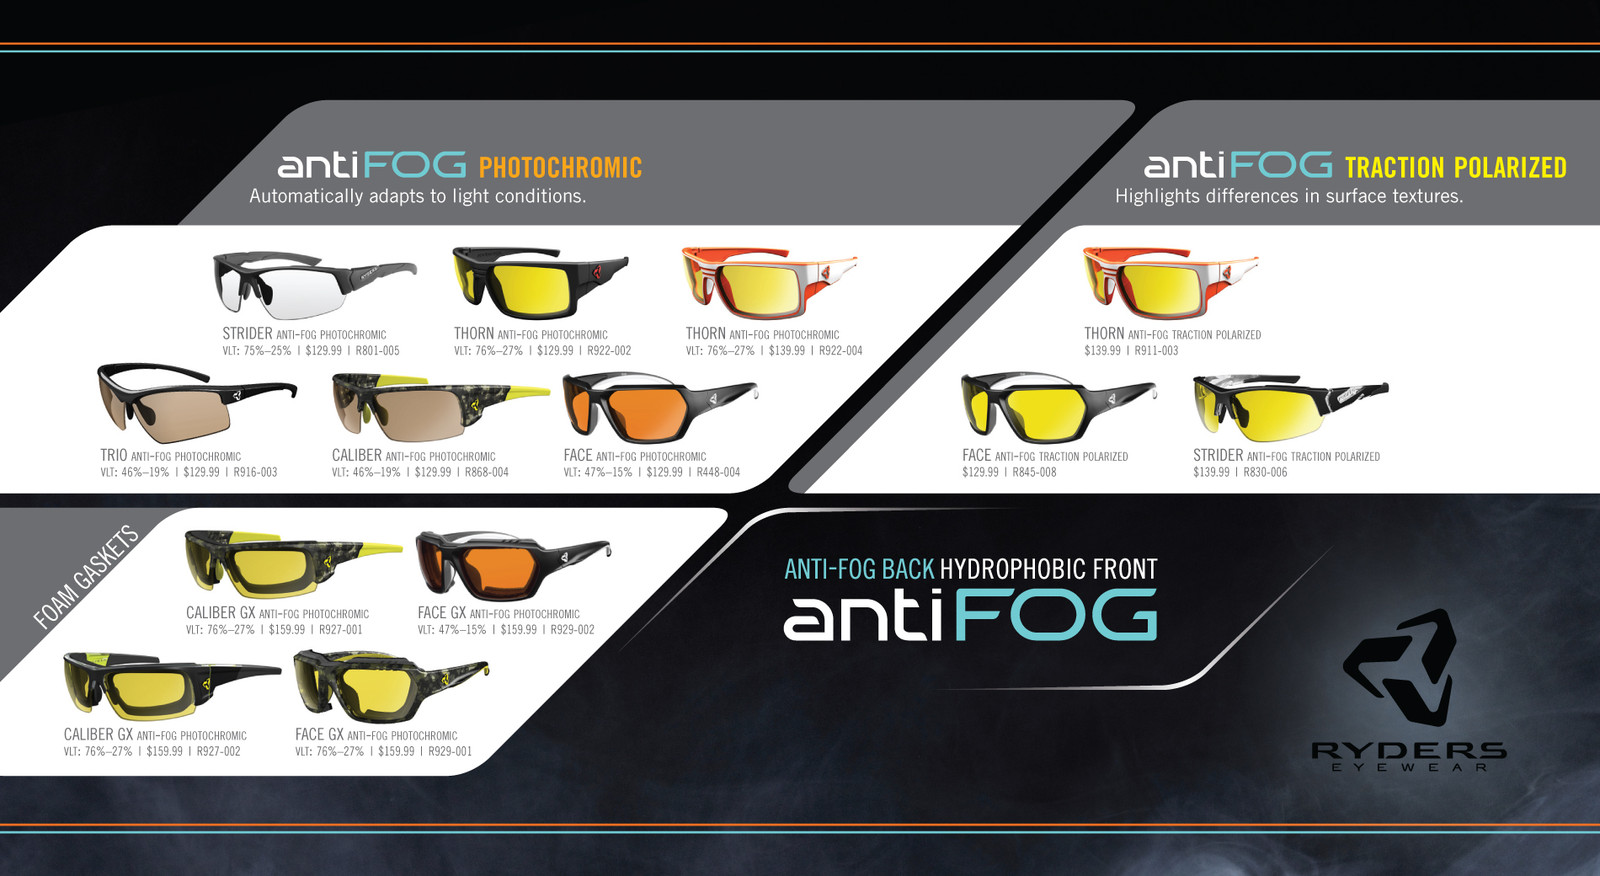 c765a3188b First Look  Ryders Eyewear antiFOG Collection - Mountain Bikes ...